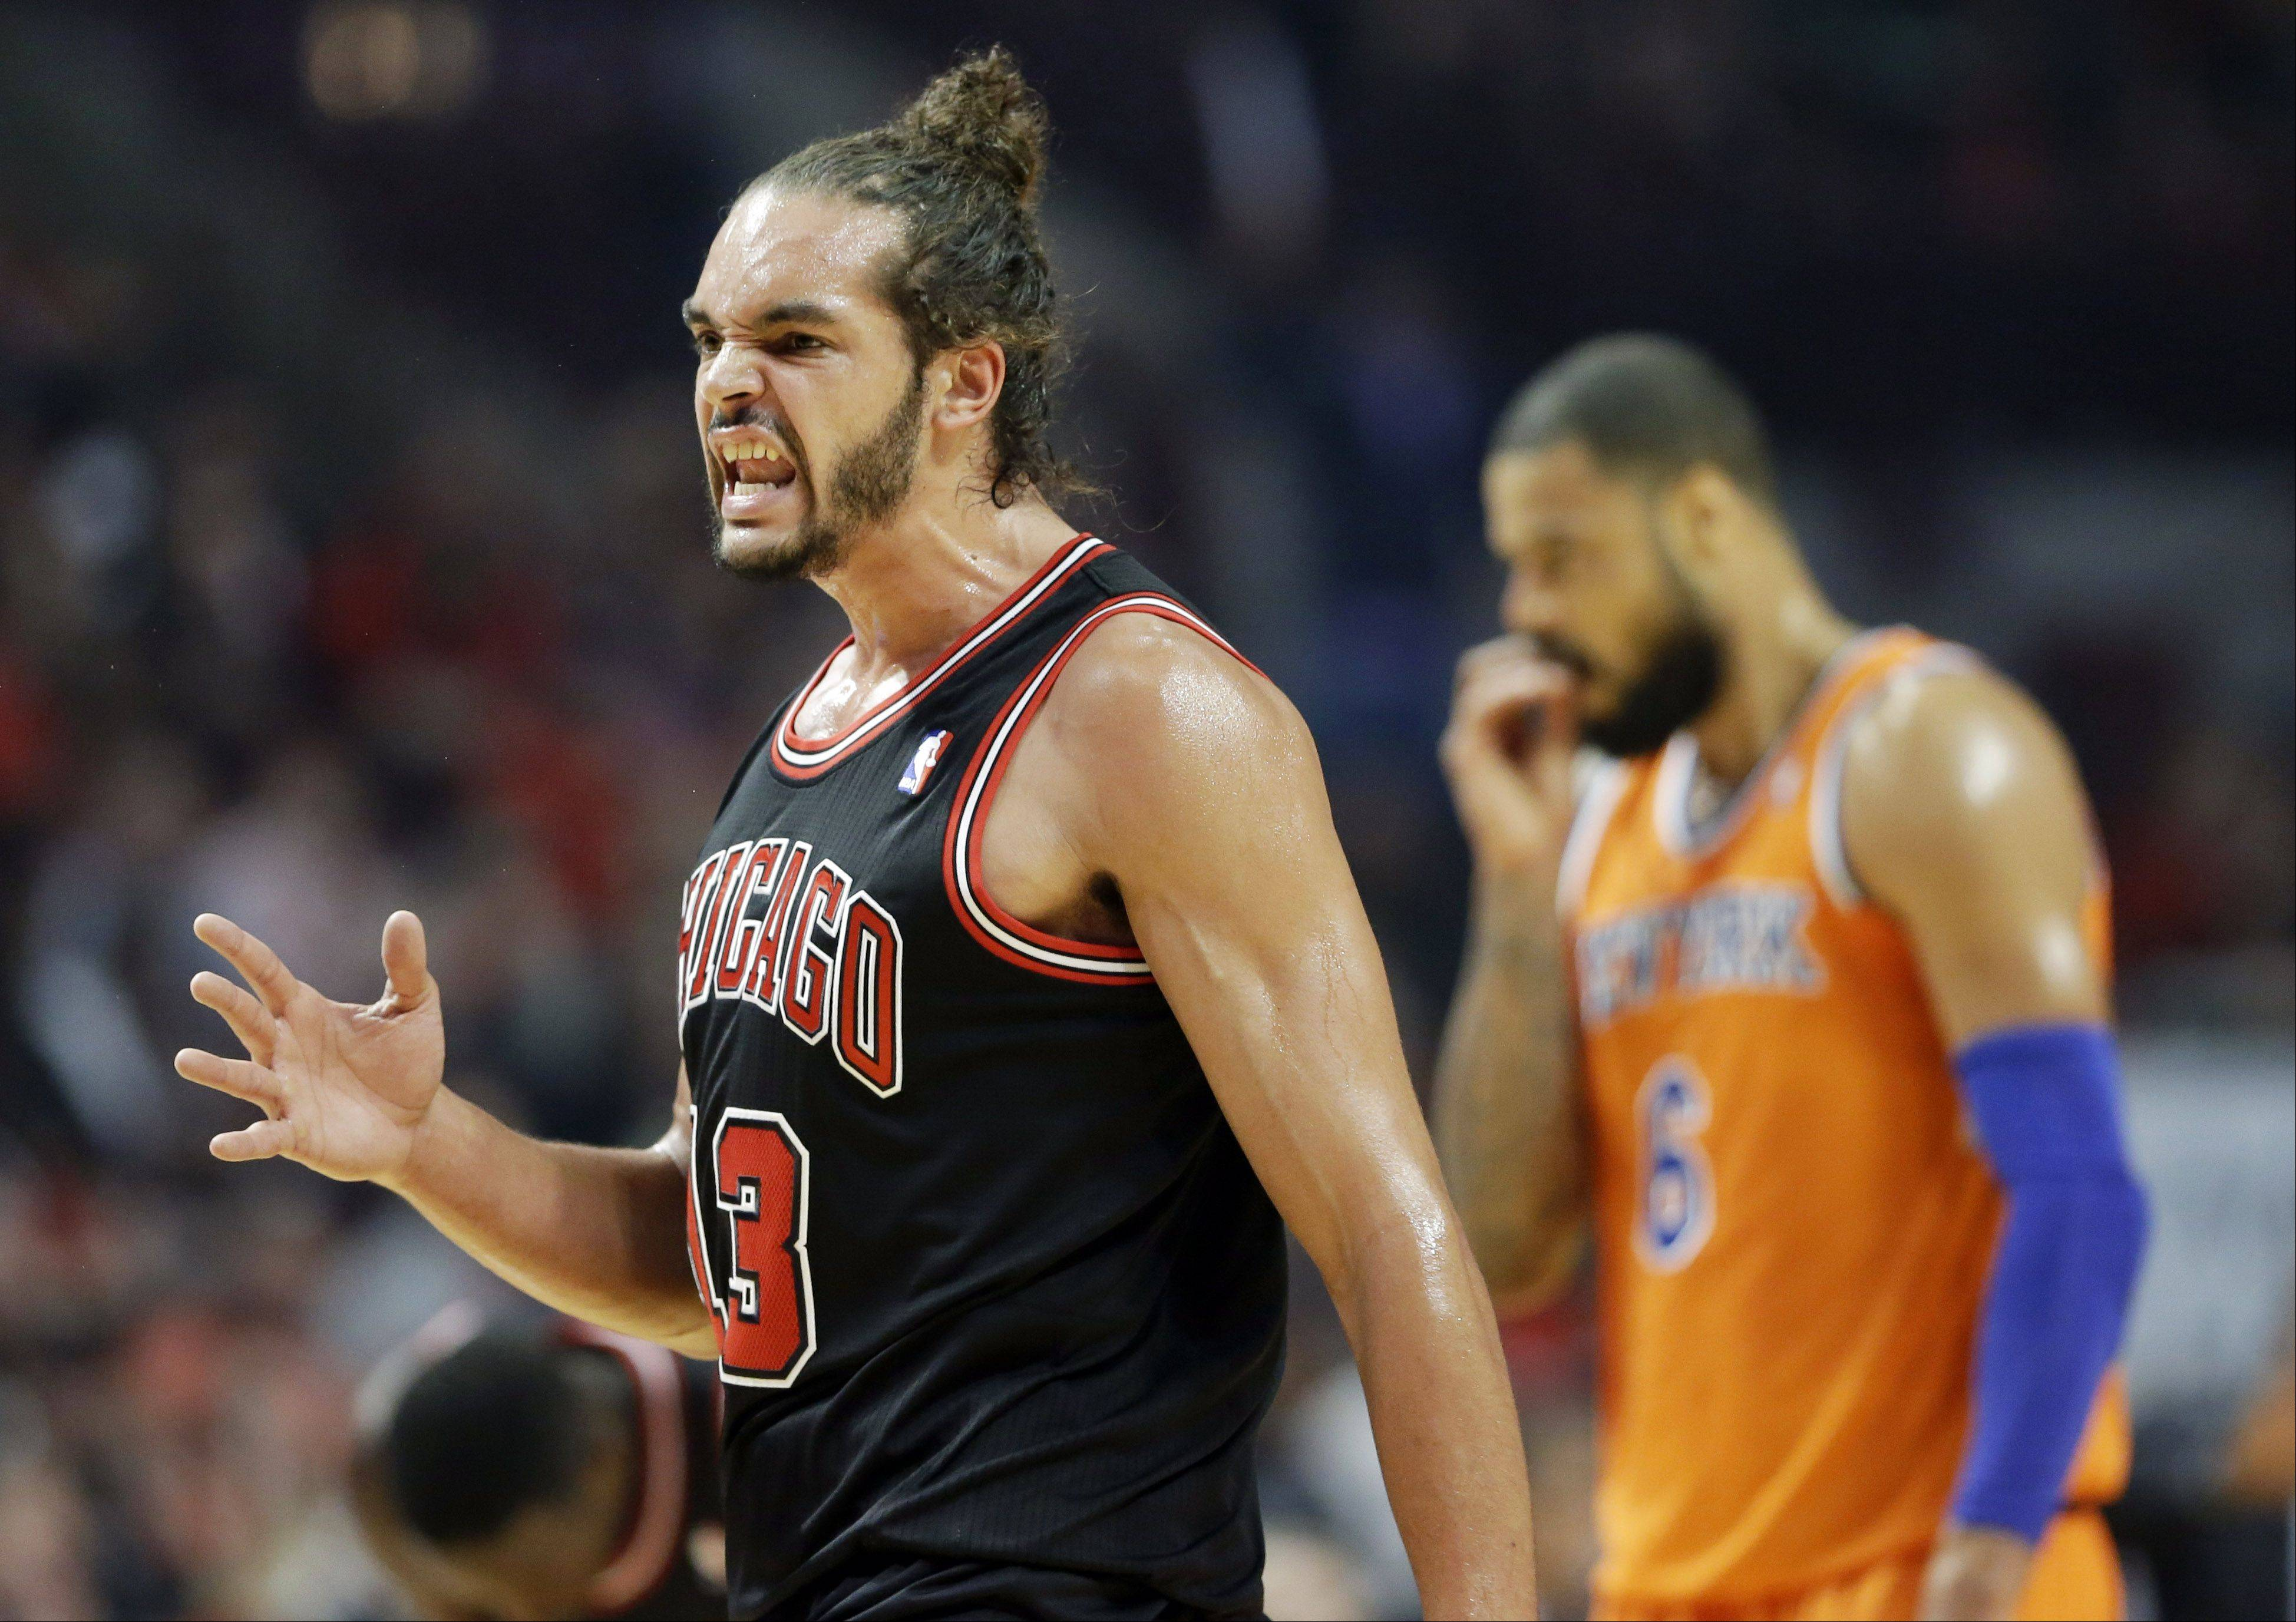 Chicago Bulls center Joakim Noah, left, reacts after Derrick Rose scored a basket as New York Knicks center Tyson Chandler is at right during the first half of an NBA basketball game in Chicago, Thursday, Oct. 31, 2013.